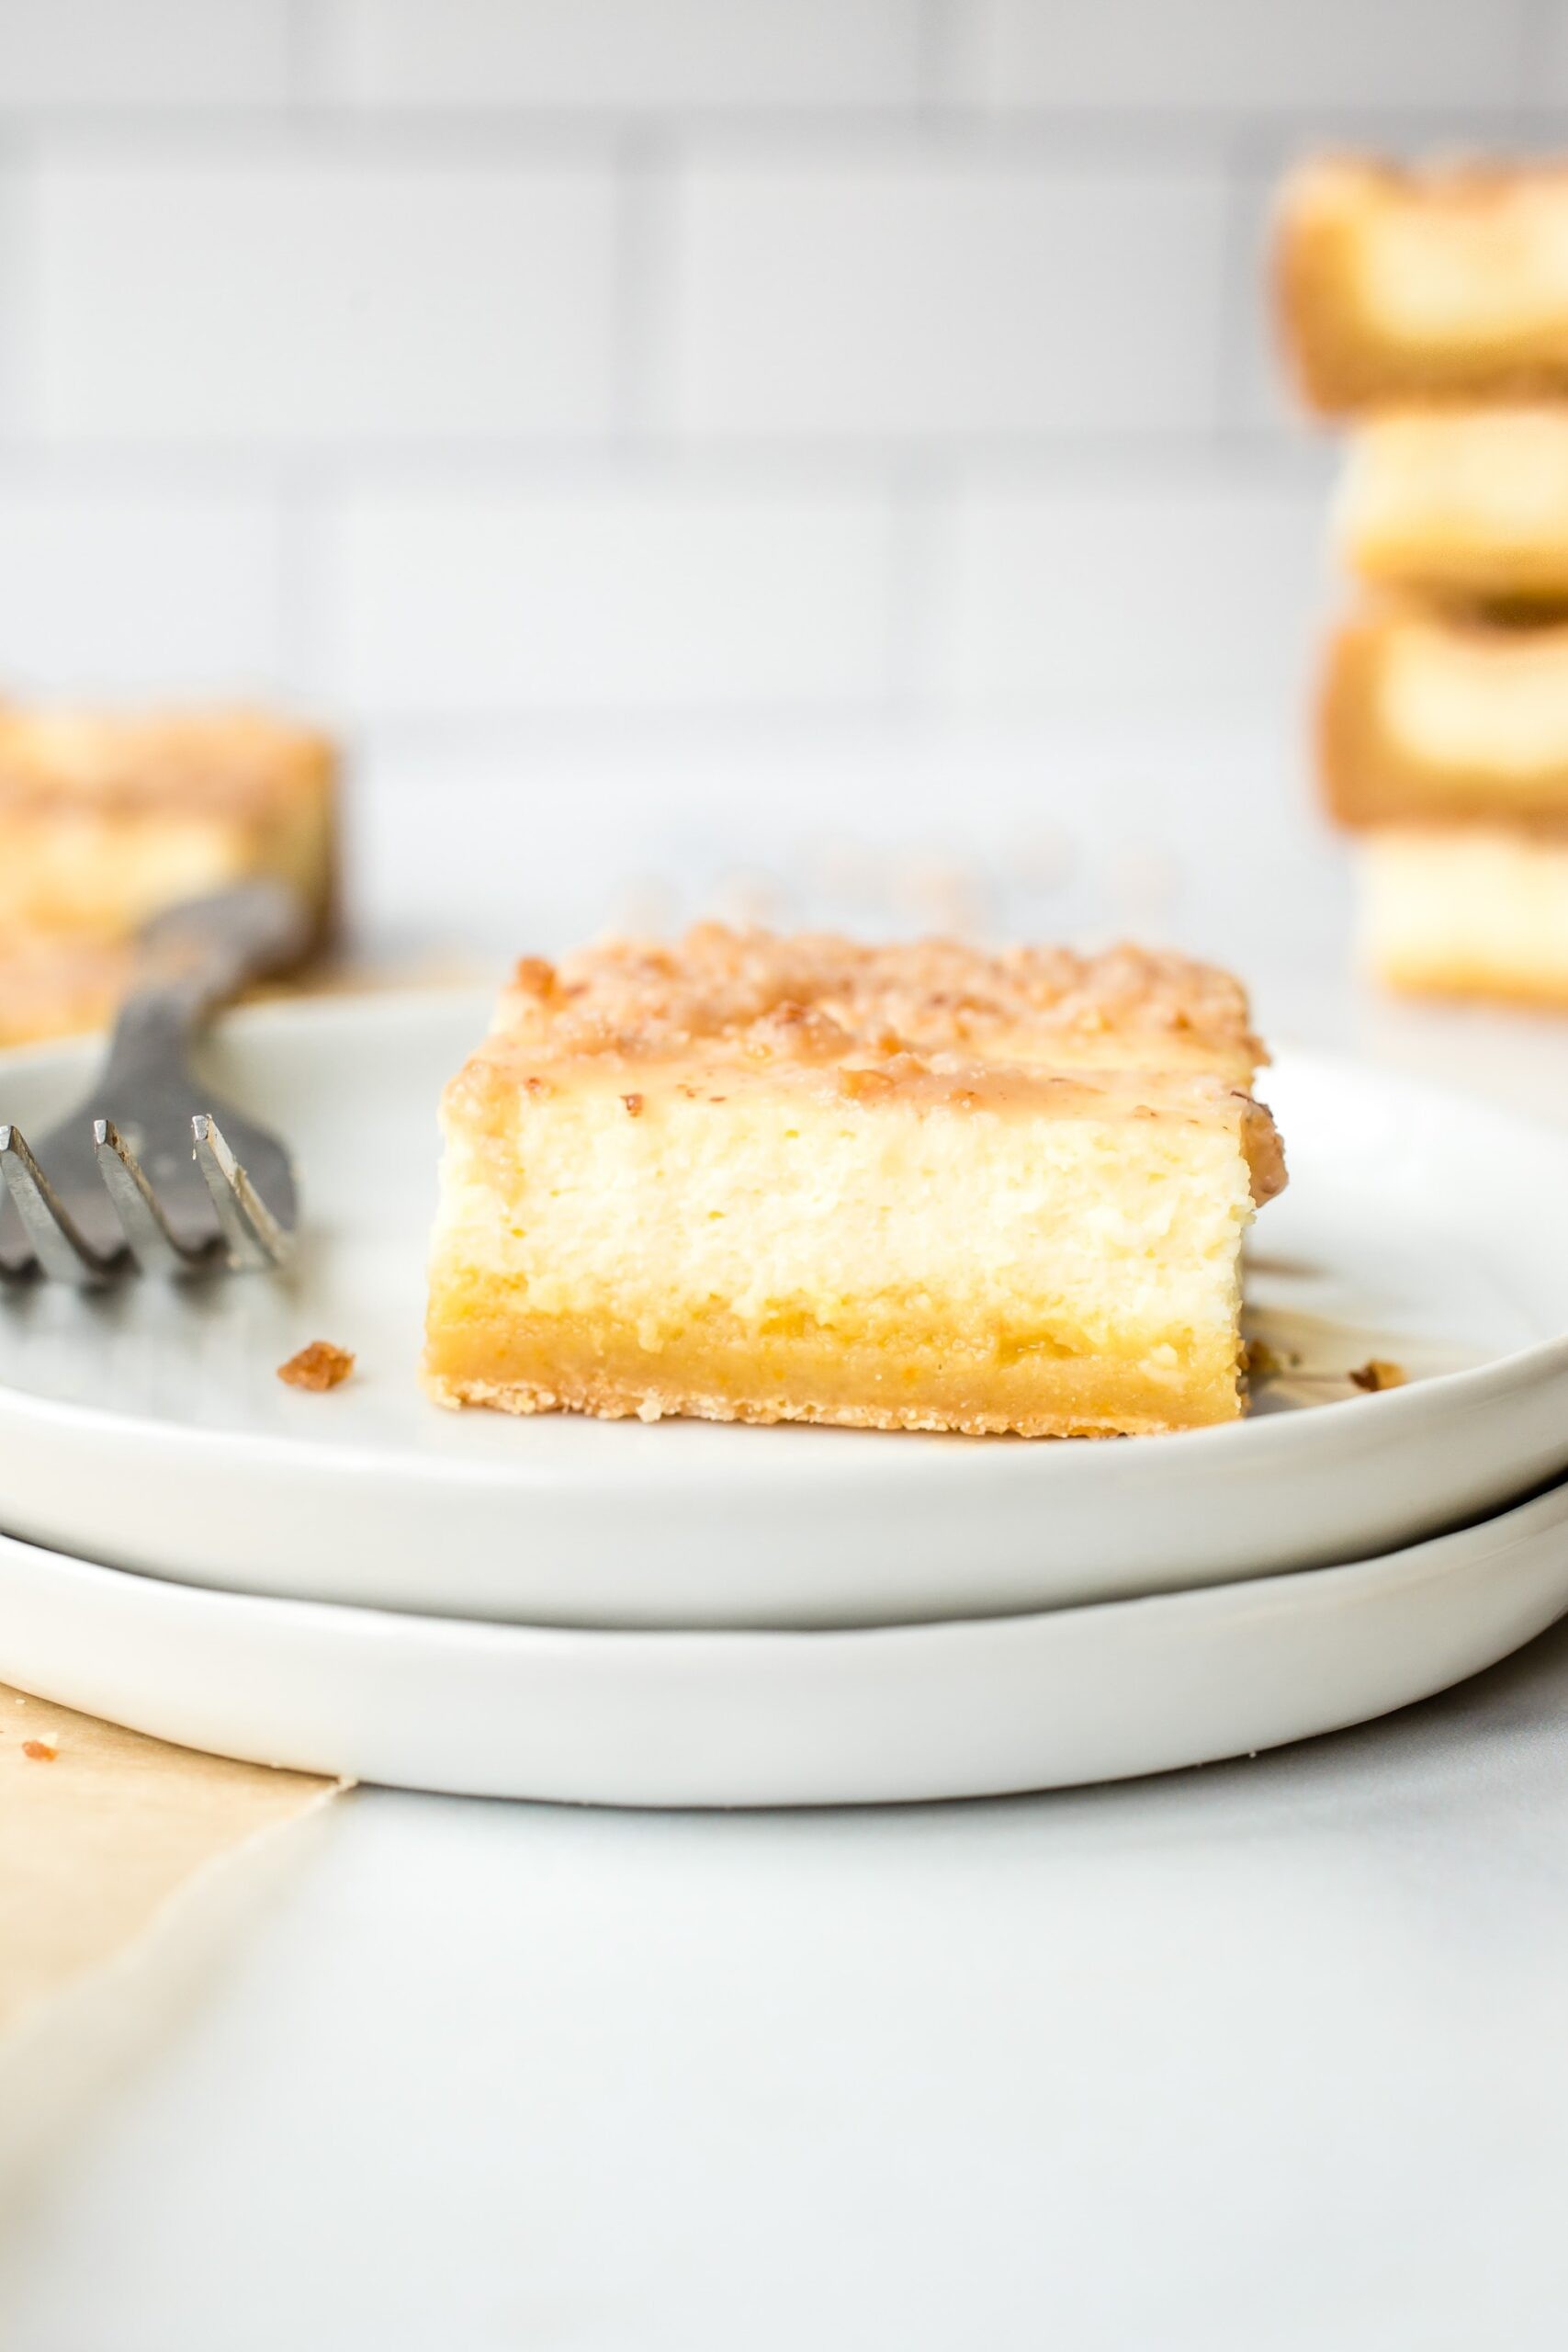 Sugar Cookie Cheesecake bar on a plate